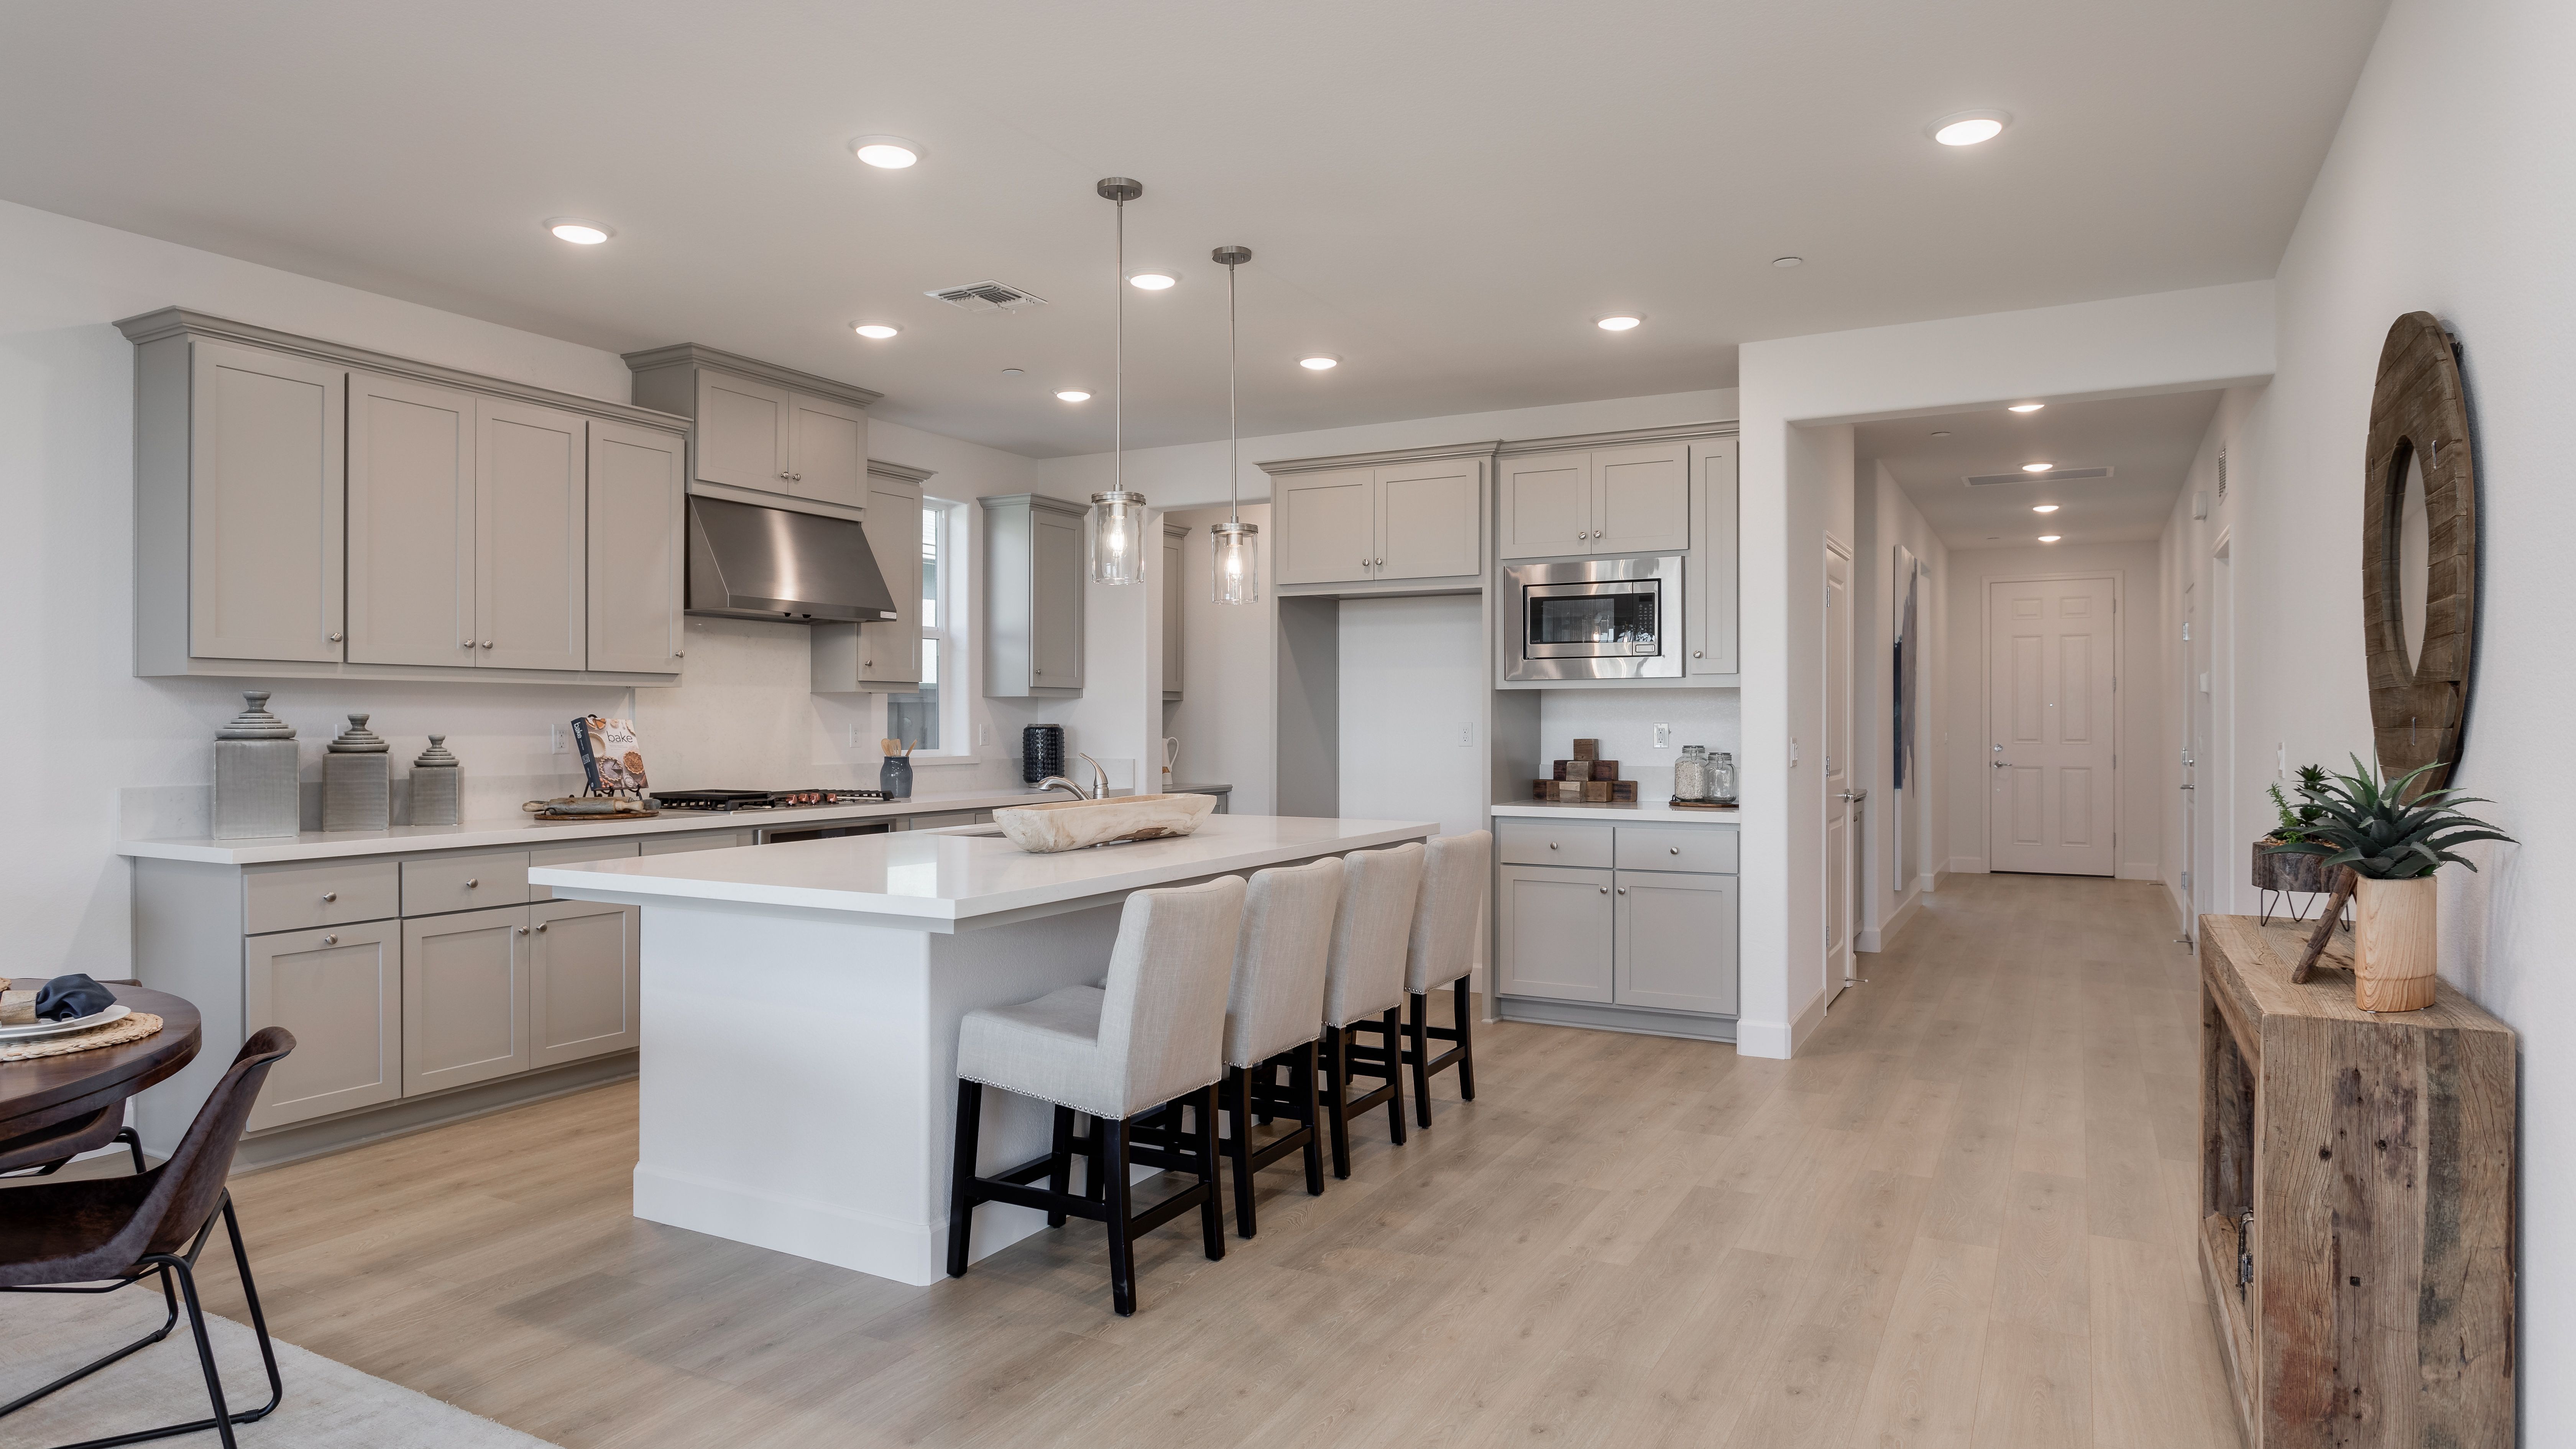 Kitchen featured in the Residence 6 By Taylor Morrison in Stockton-Lodi, CA